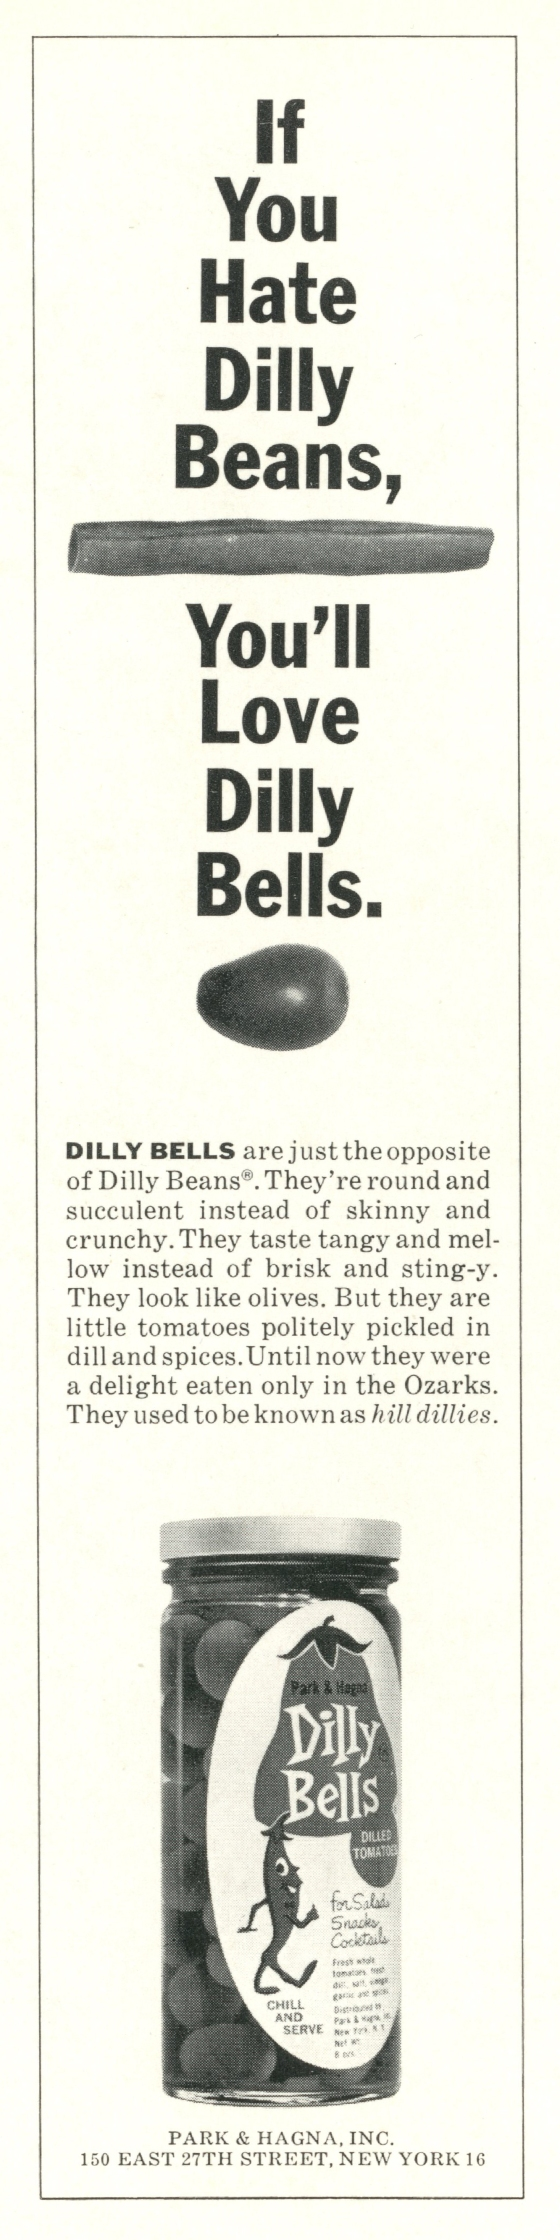 PKL2; Dilly Beans 'Bells'-01